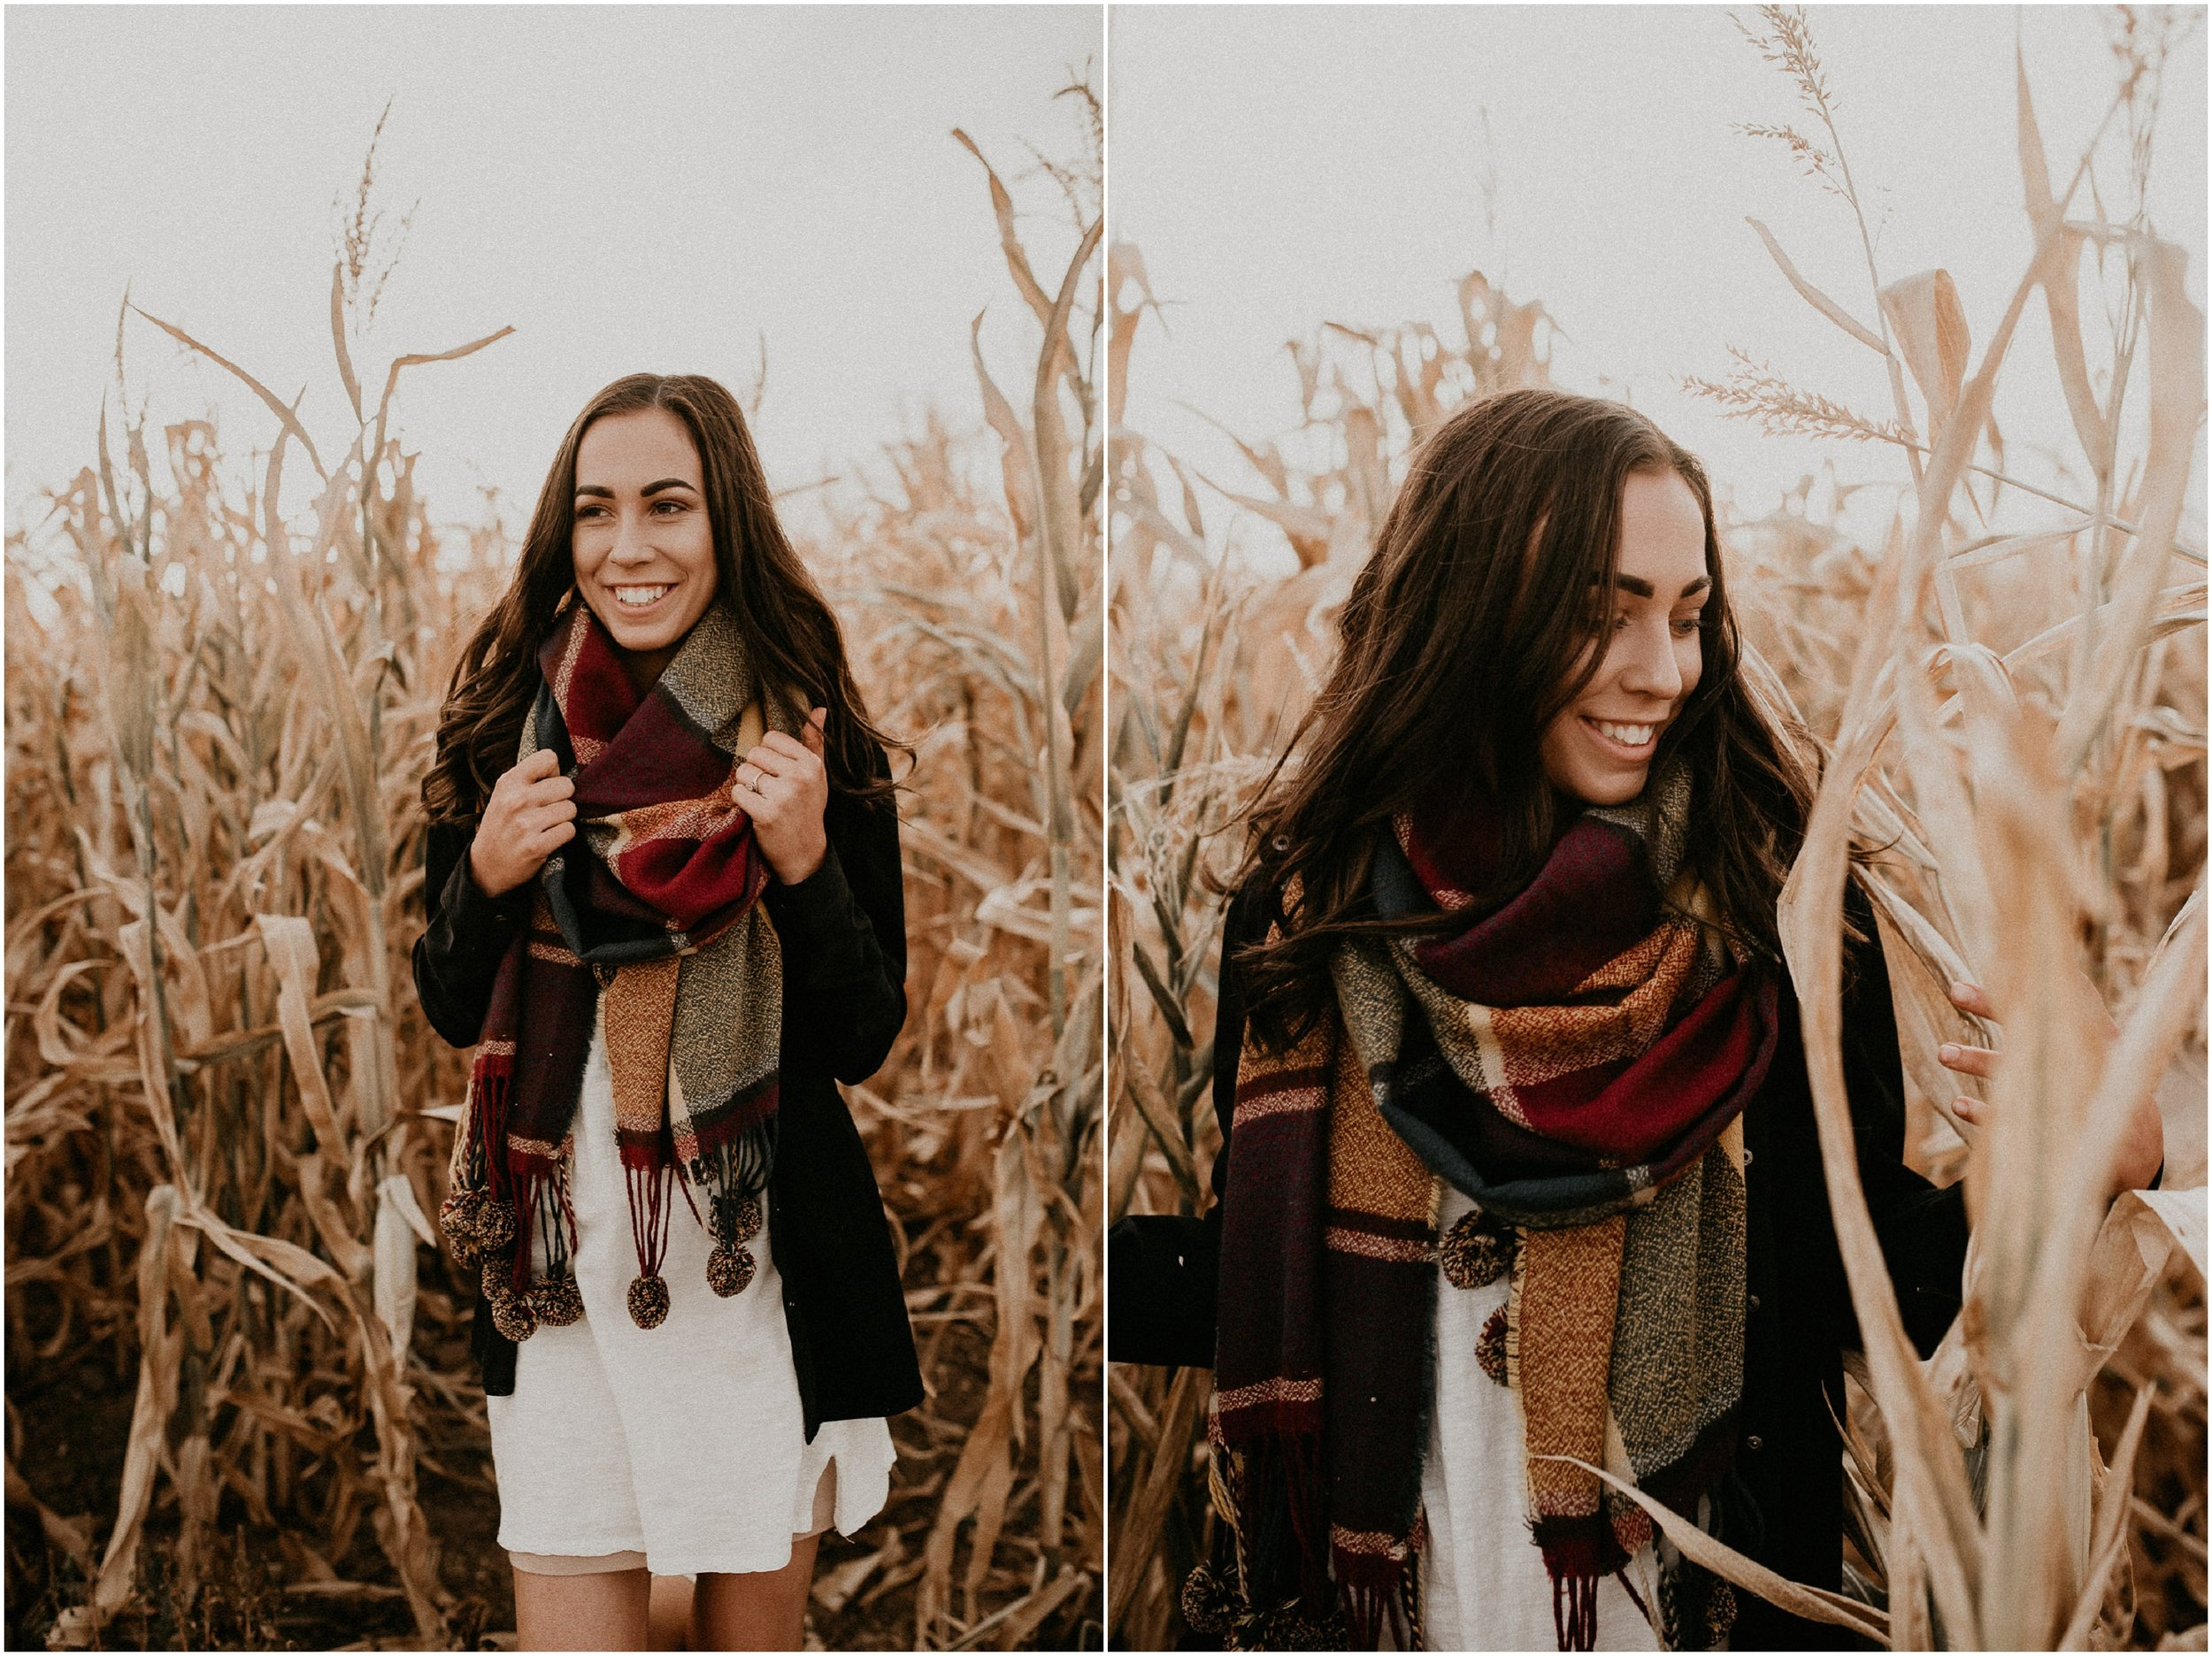 Boise Senior Boudoir Wedding Photographer Makayla Madden Photography Idaho Farmstead Corn Maze Fall Portrait Outfit Ideas Inspiration Plaid Scarf Pumpkin Patch Senior Girl